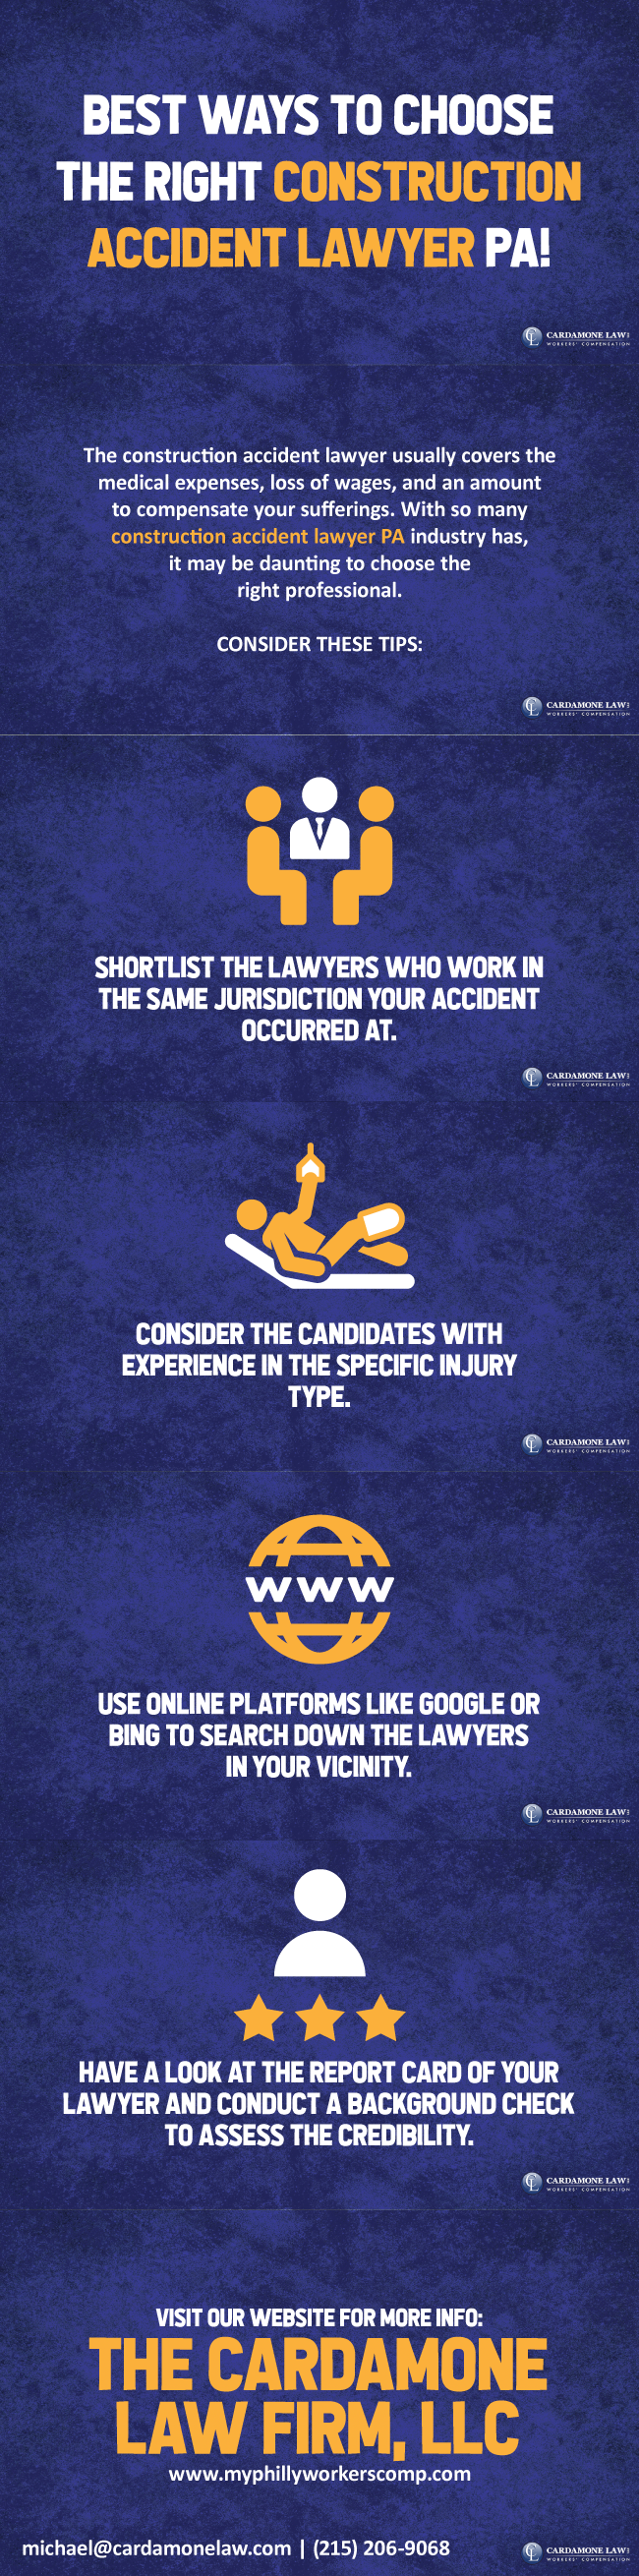 Choose The Right Construction Accident Lawyer PA Injury